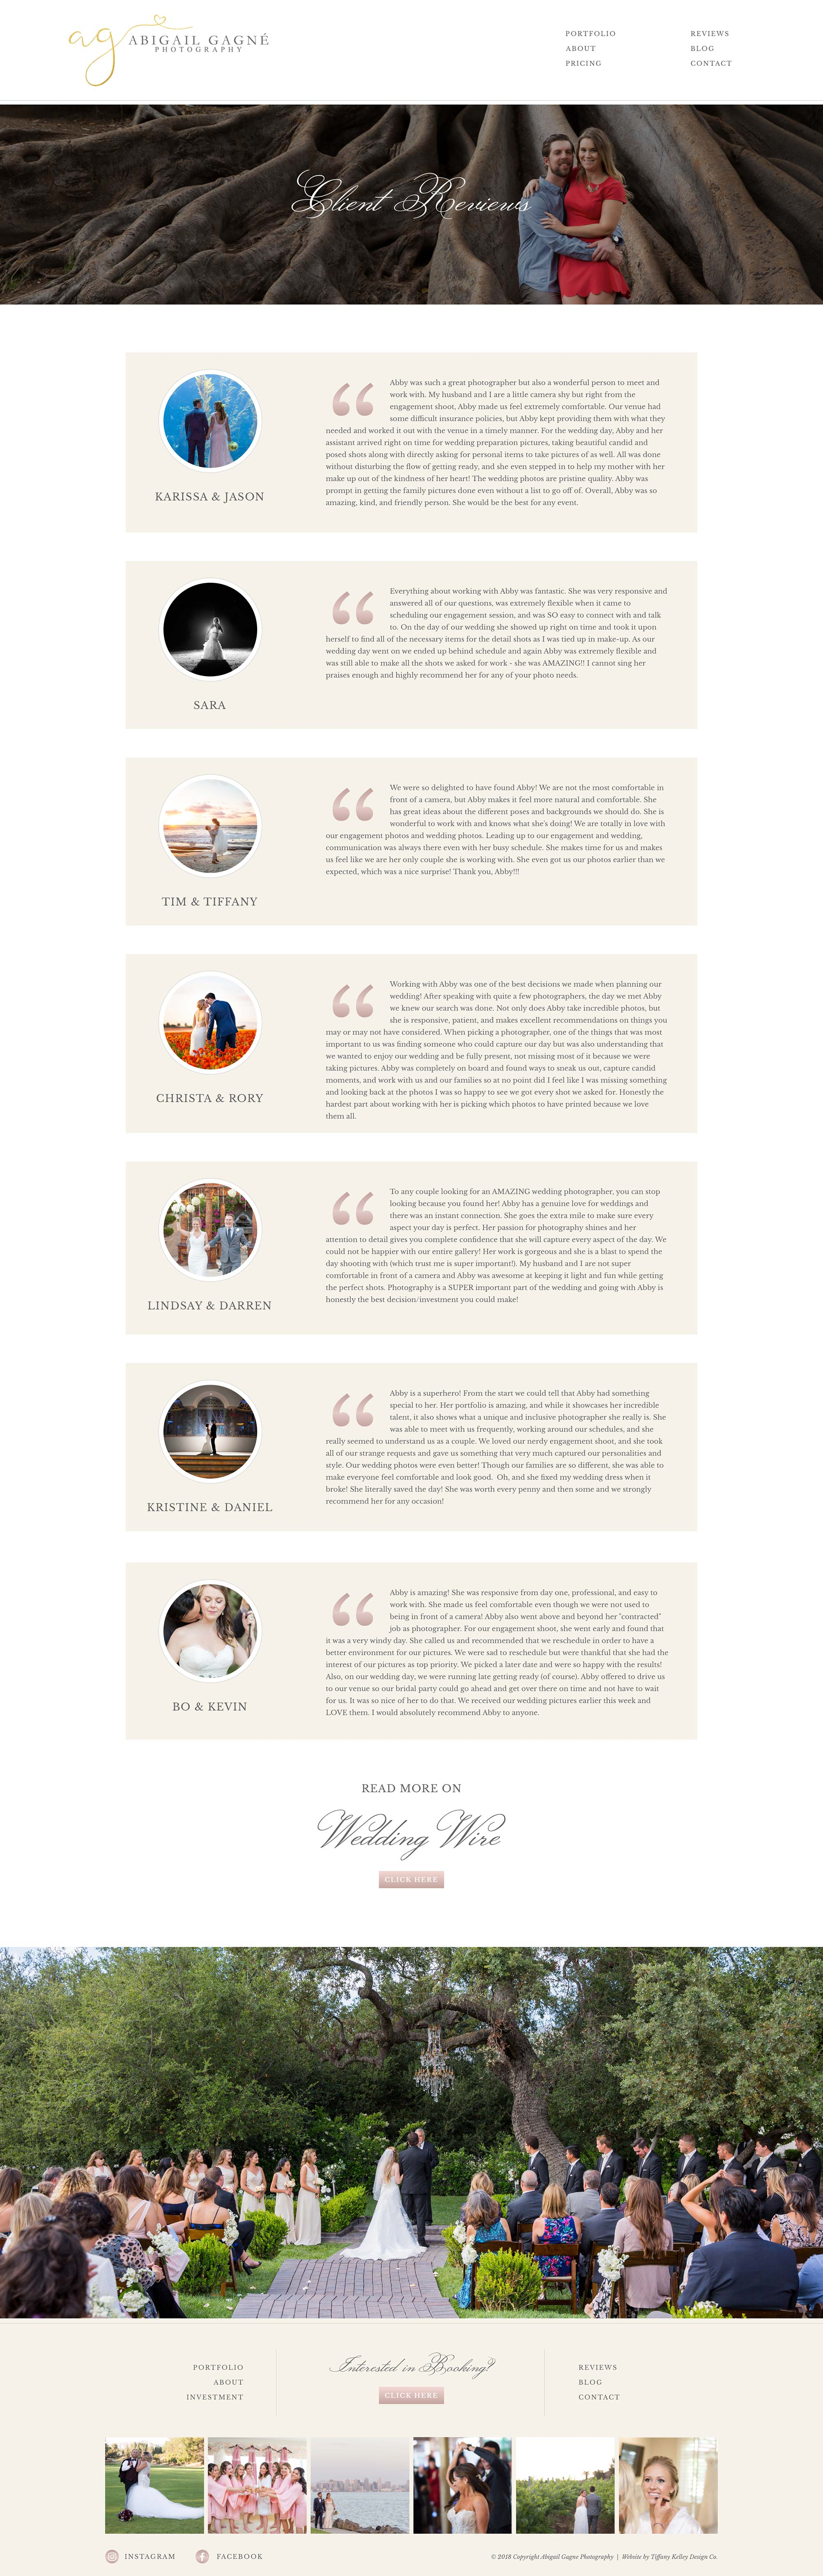 reviews web design abigail gagne photography